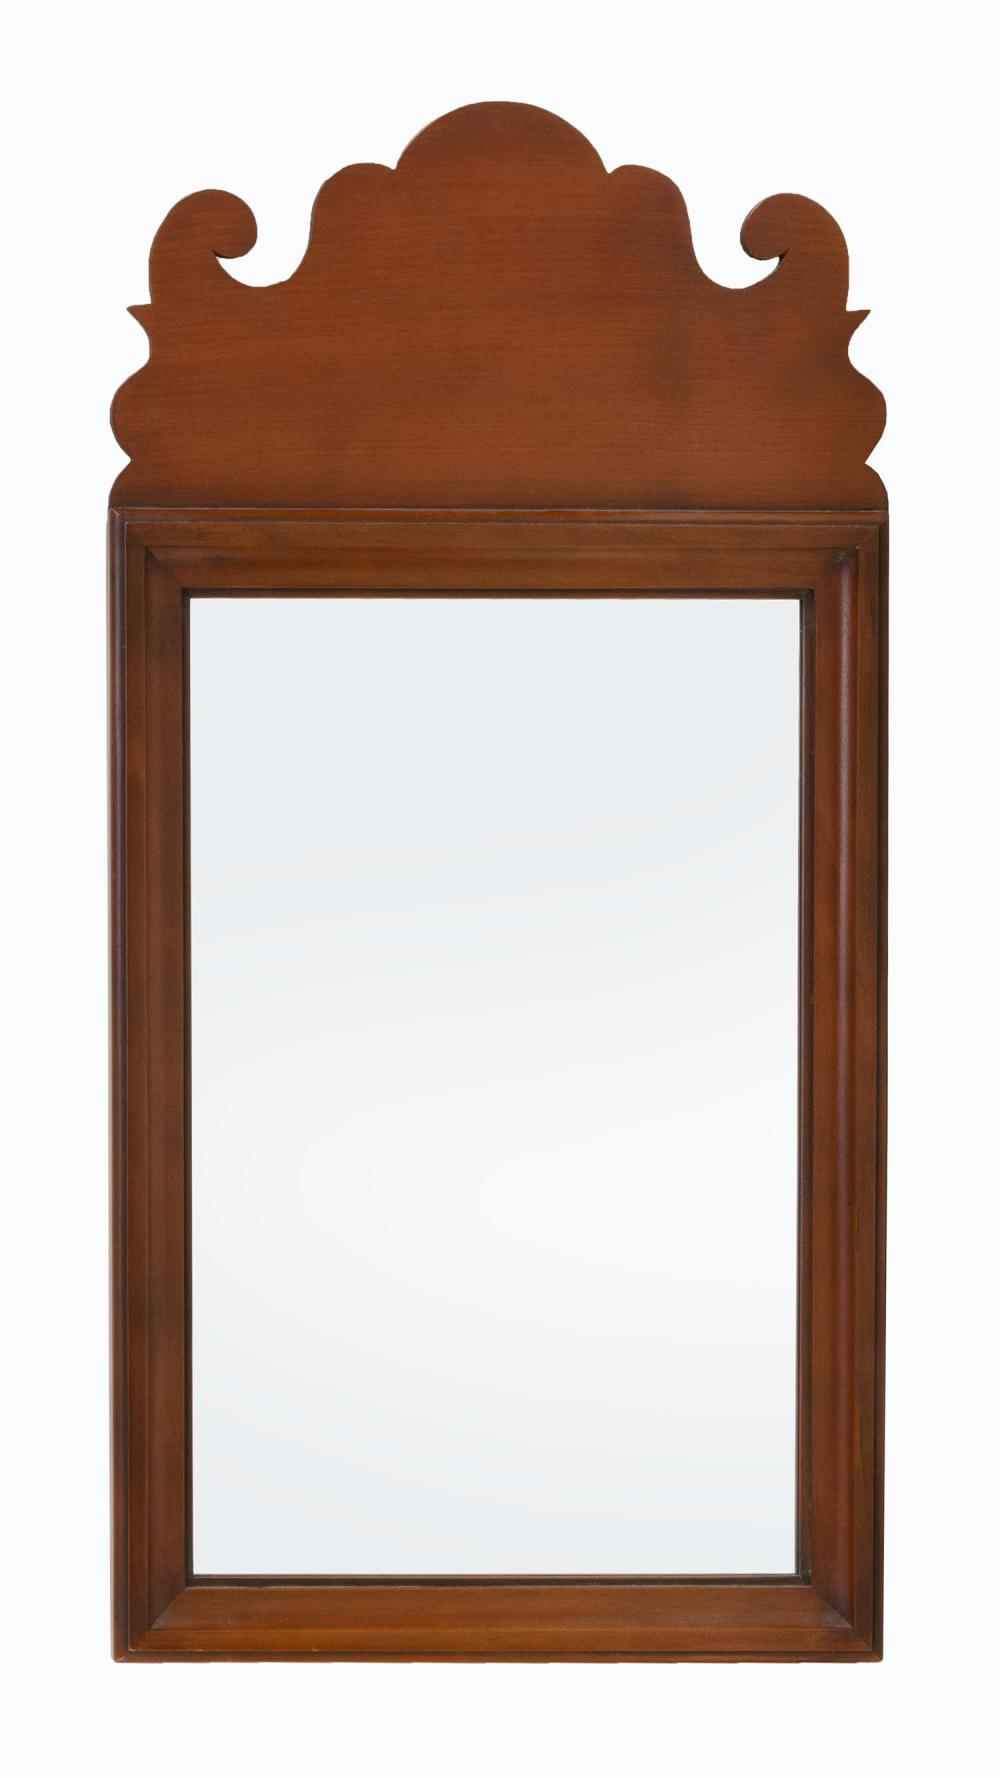 ELDRED WHEELER CHIPPENDALE-STYLE PIER MIRROR Carved and scrolled crest. Rectangular molded frame. Branded and with paper label on th...